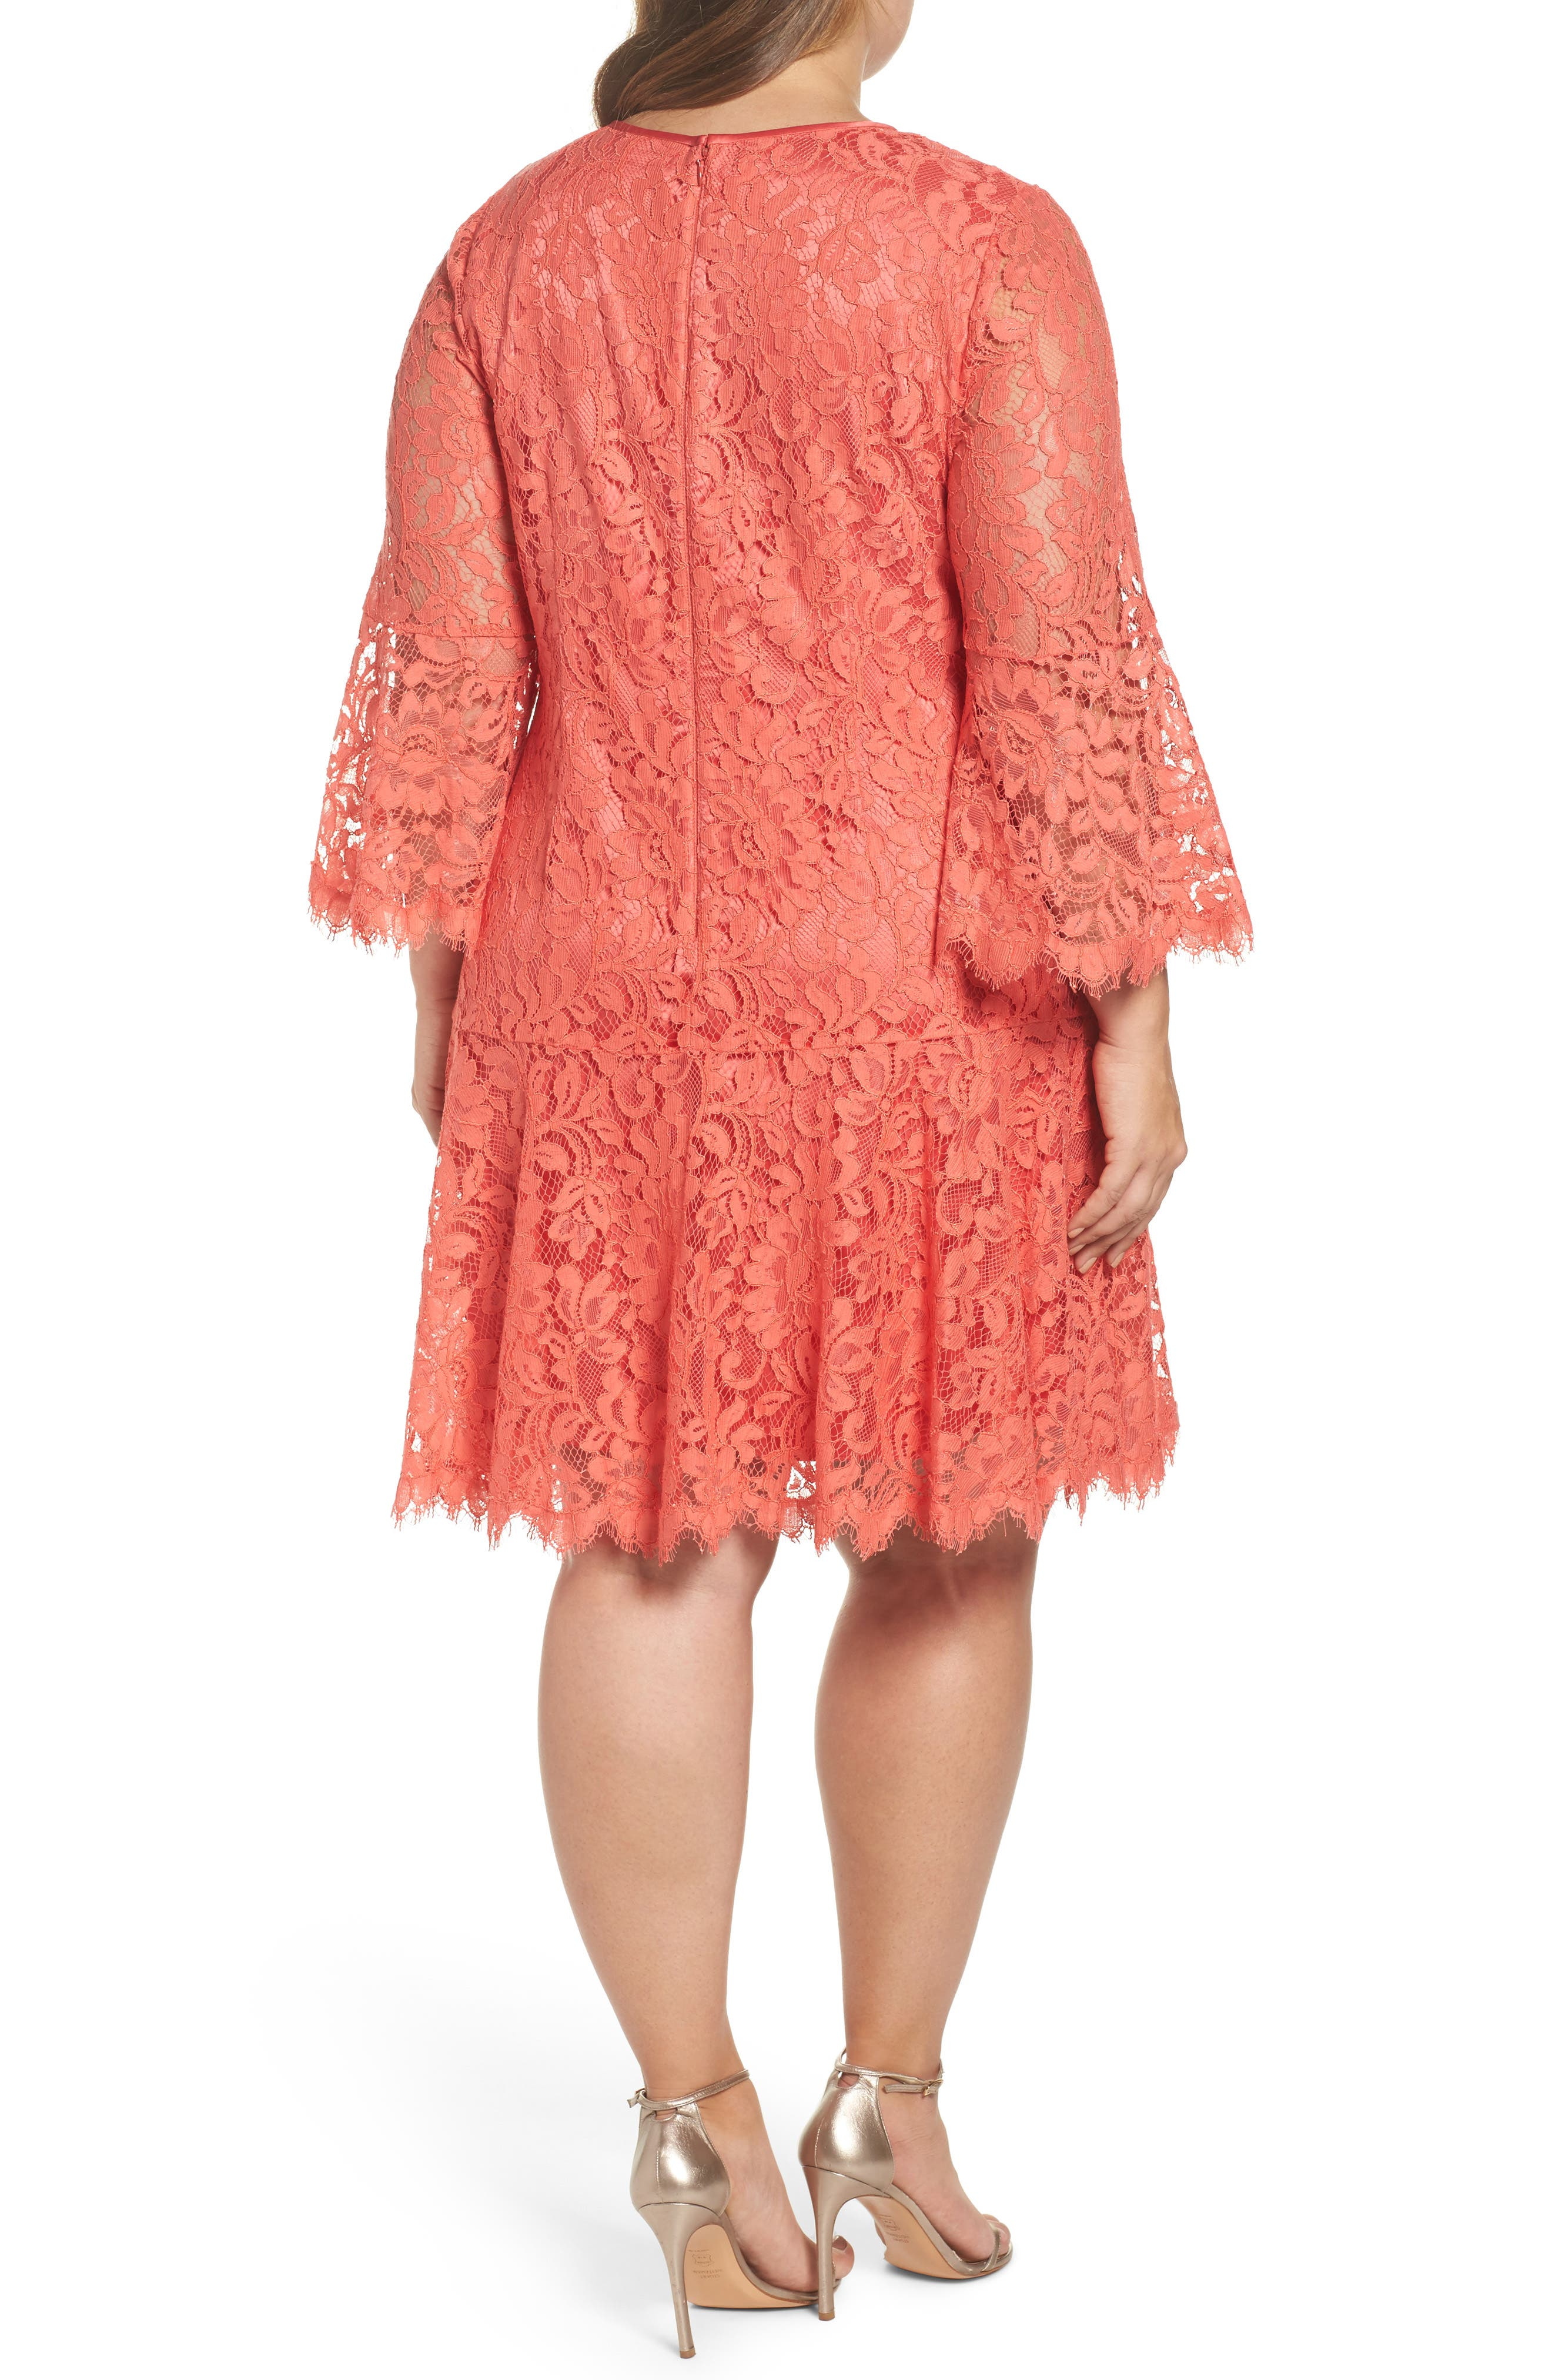 Bell Sleeve Lace Shift Dress,                             Alternate thumbnail 2, color,                             651